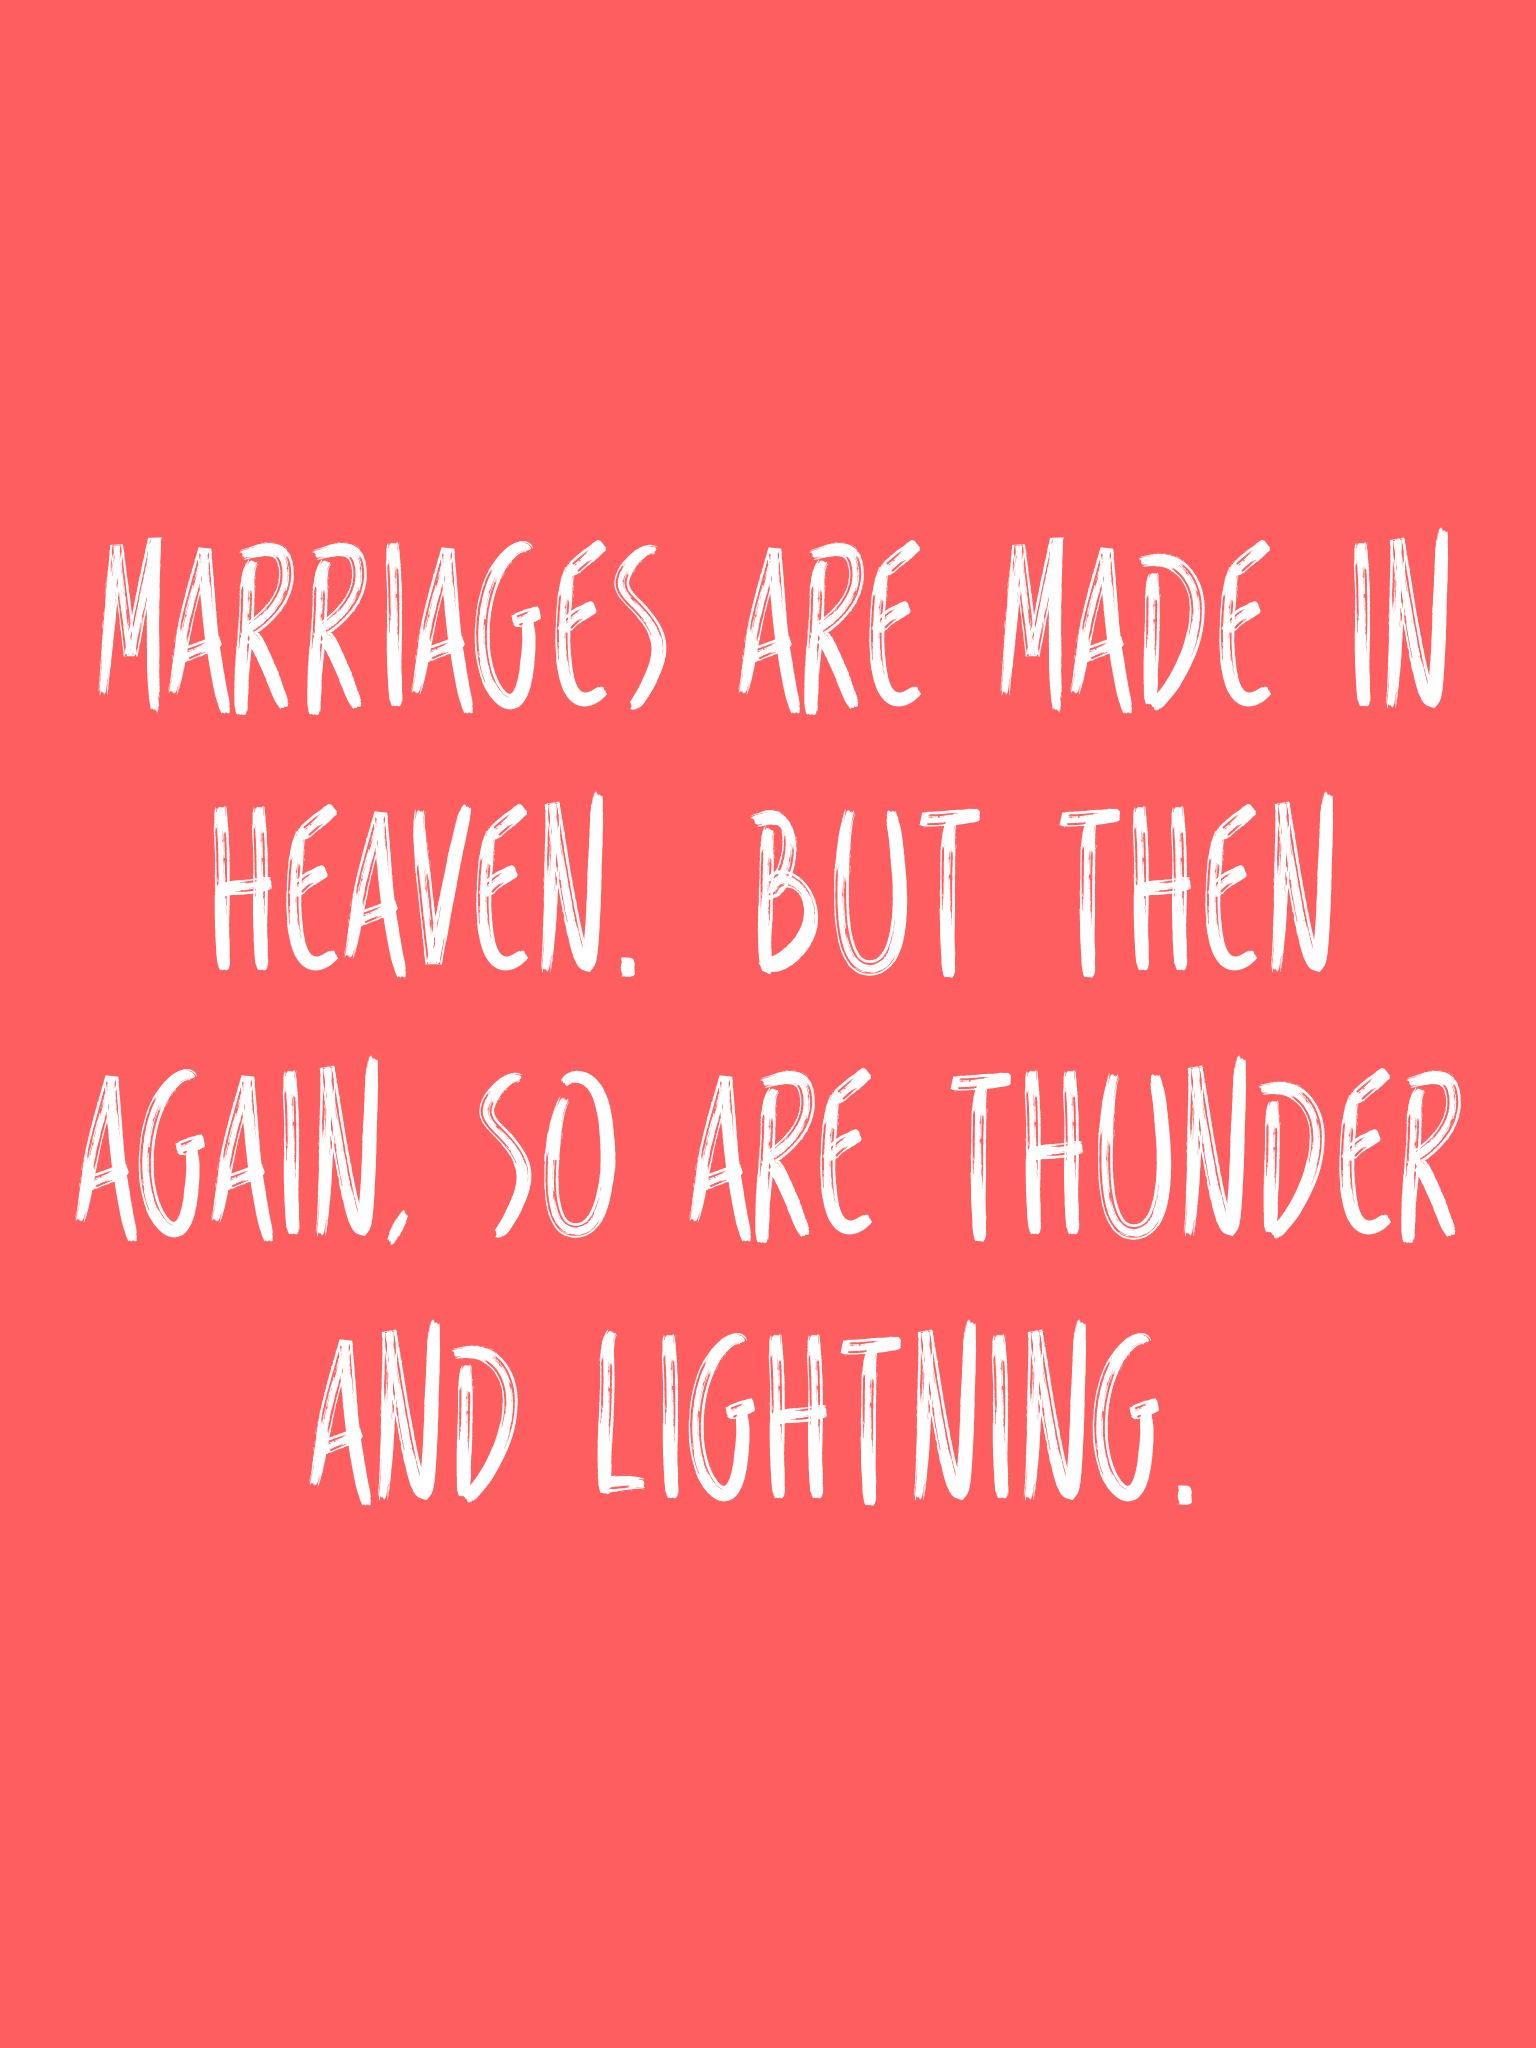 Love Quotes App Classy Marriages Are Made In Heavenbut Then Again So Are Thunder And